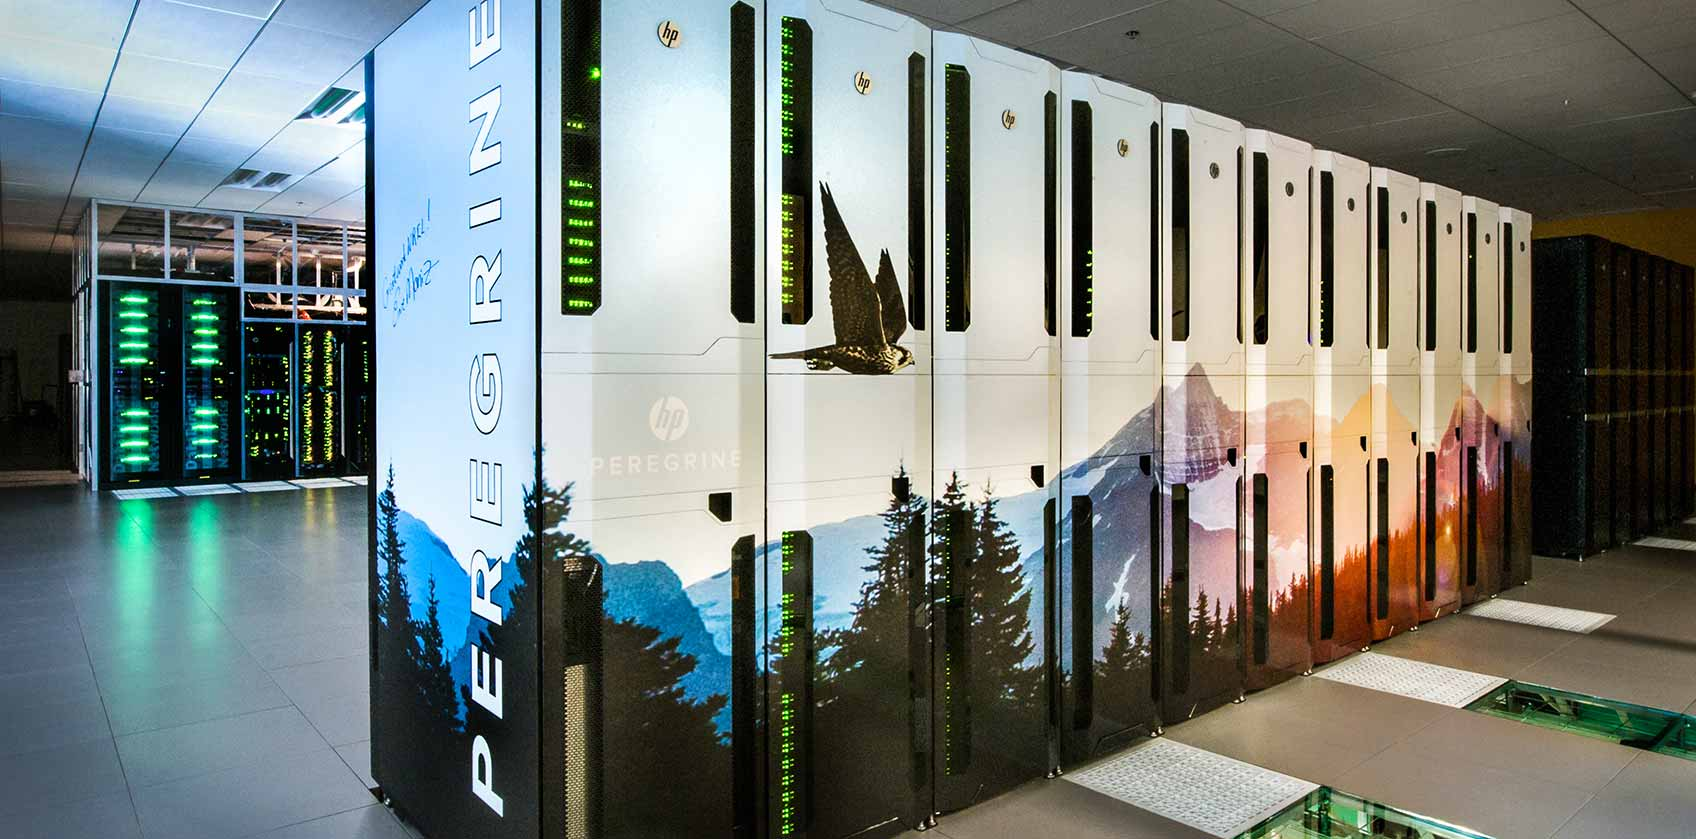 Photo of the Peregrine high-performance computing system in the Energy Systems Integration Facility data center